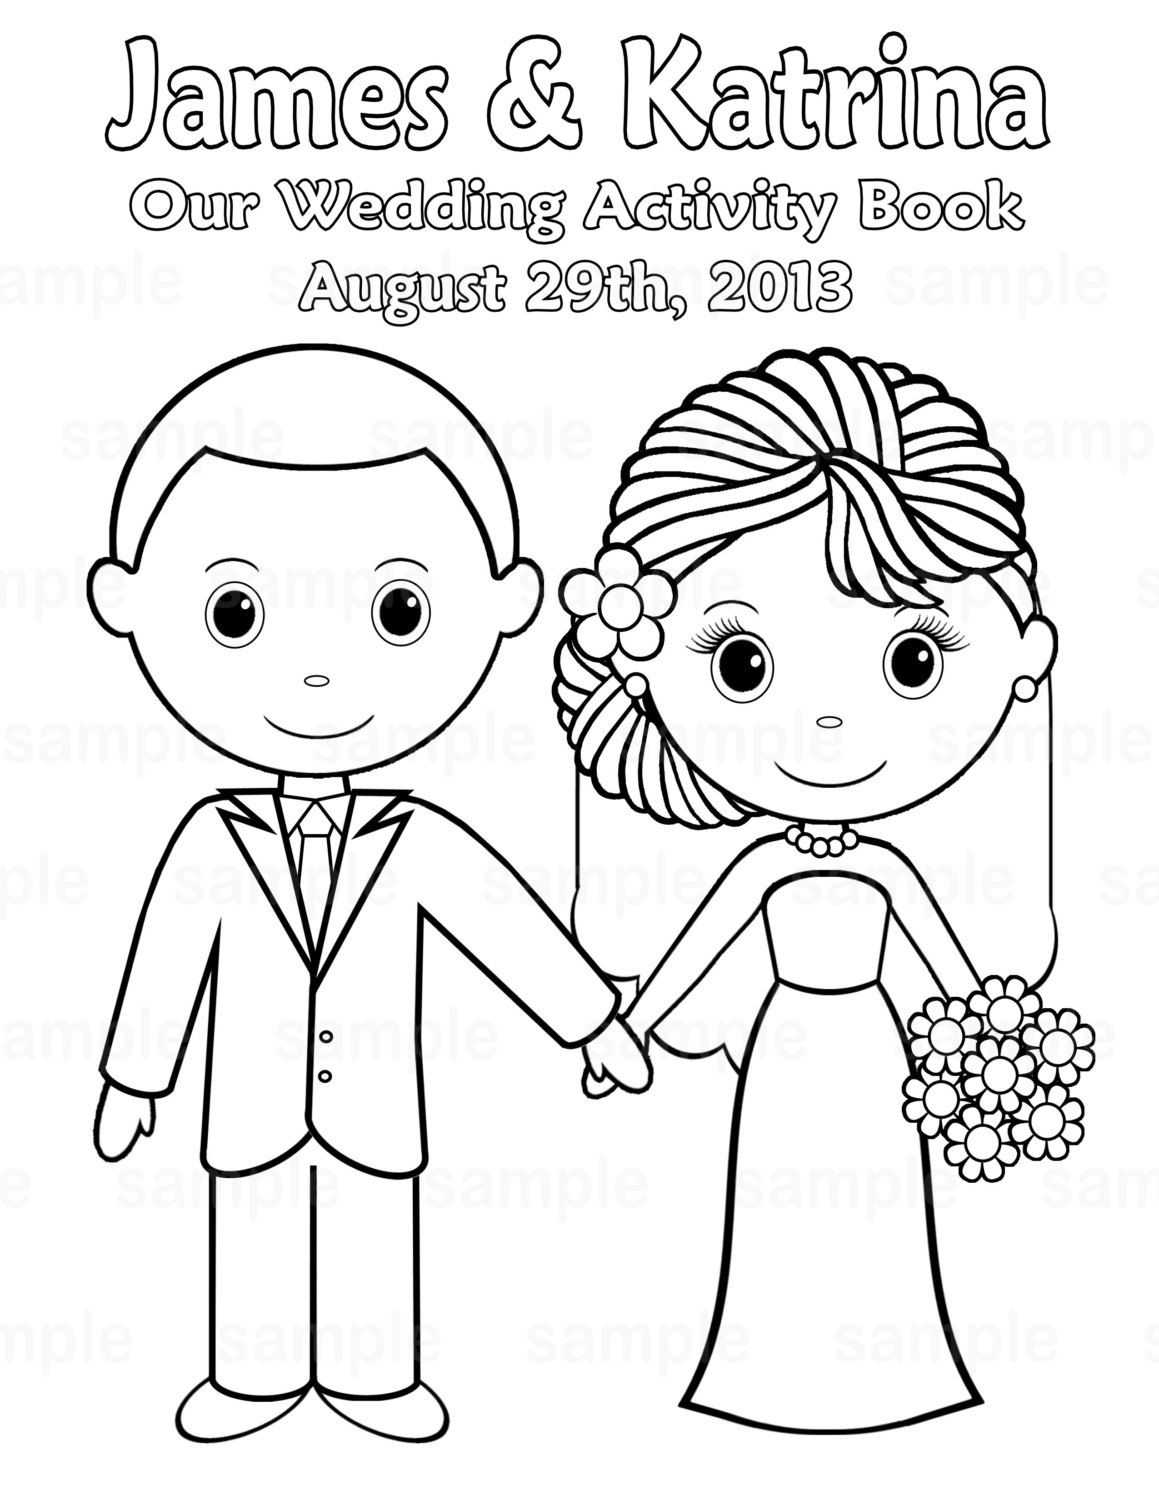 Printable Personalized Wedding Coloring Activity Book Favor Etsy Wedding With Kids Wedding Coloring Pages Wedding Activities